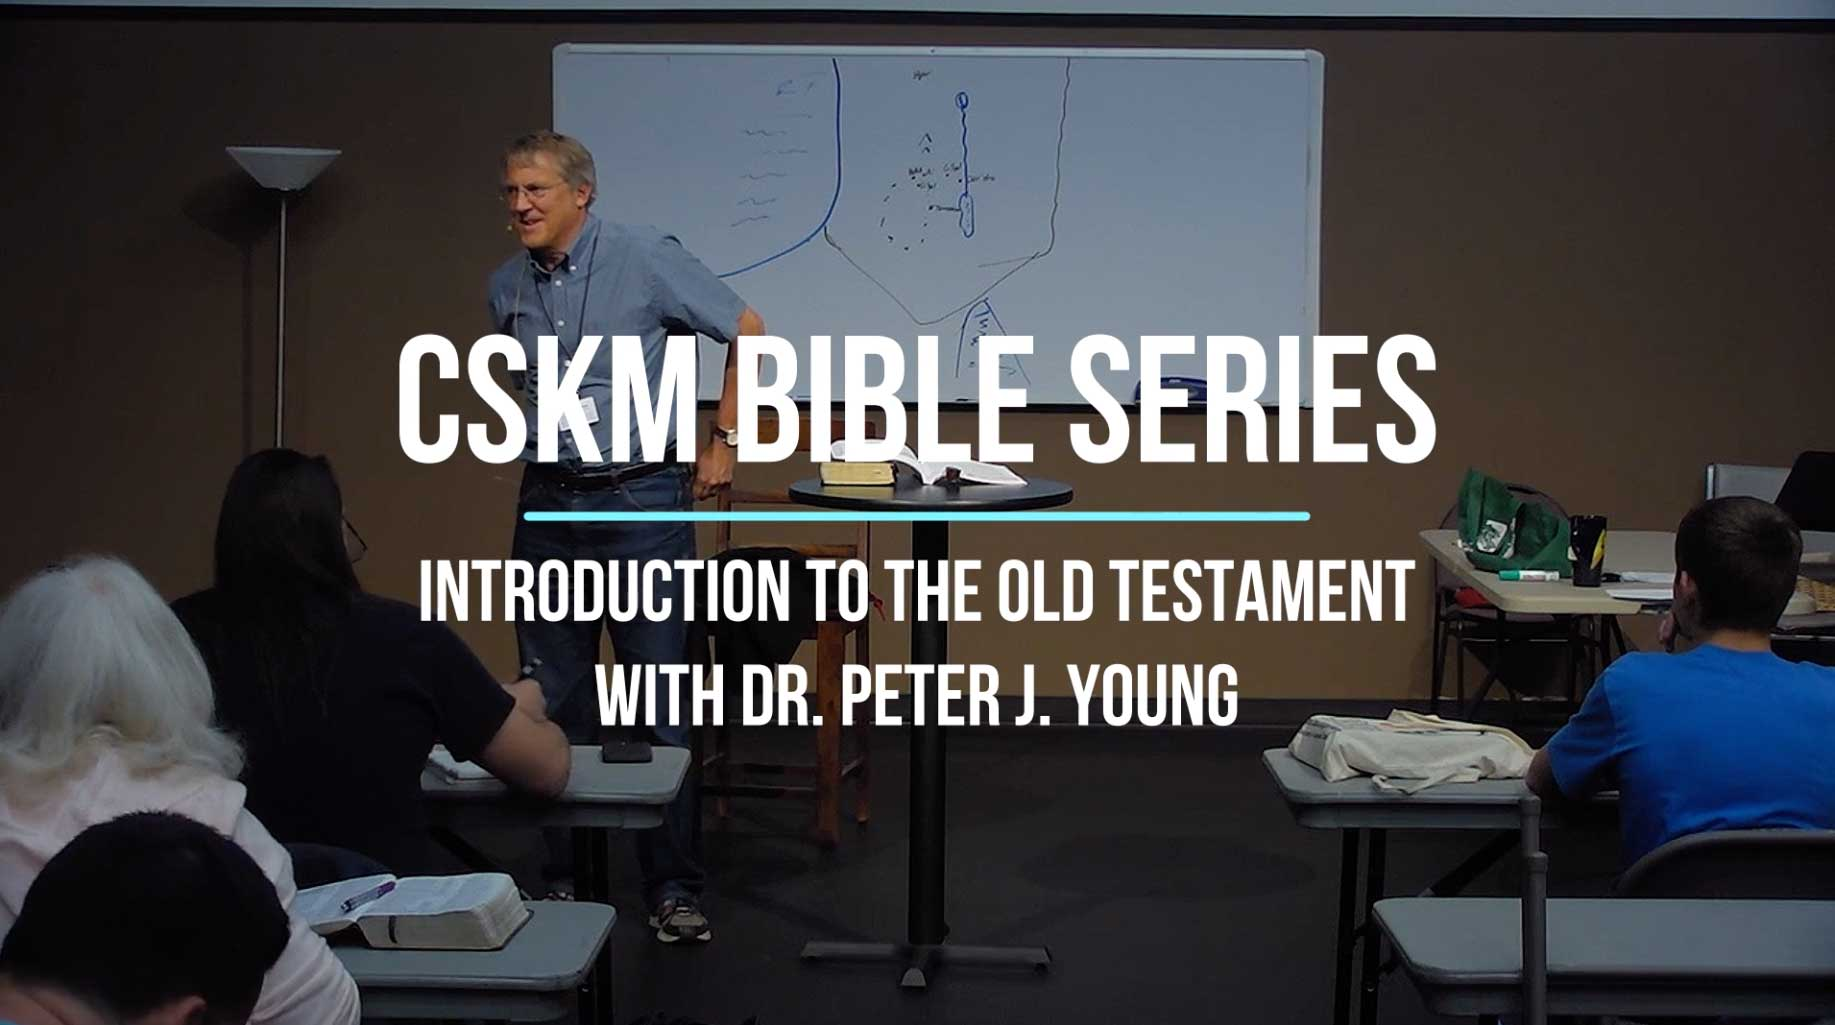 CSKM Bible Series Sample - Introduction to the Old Testament with Peter J. Young